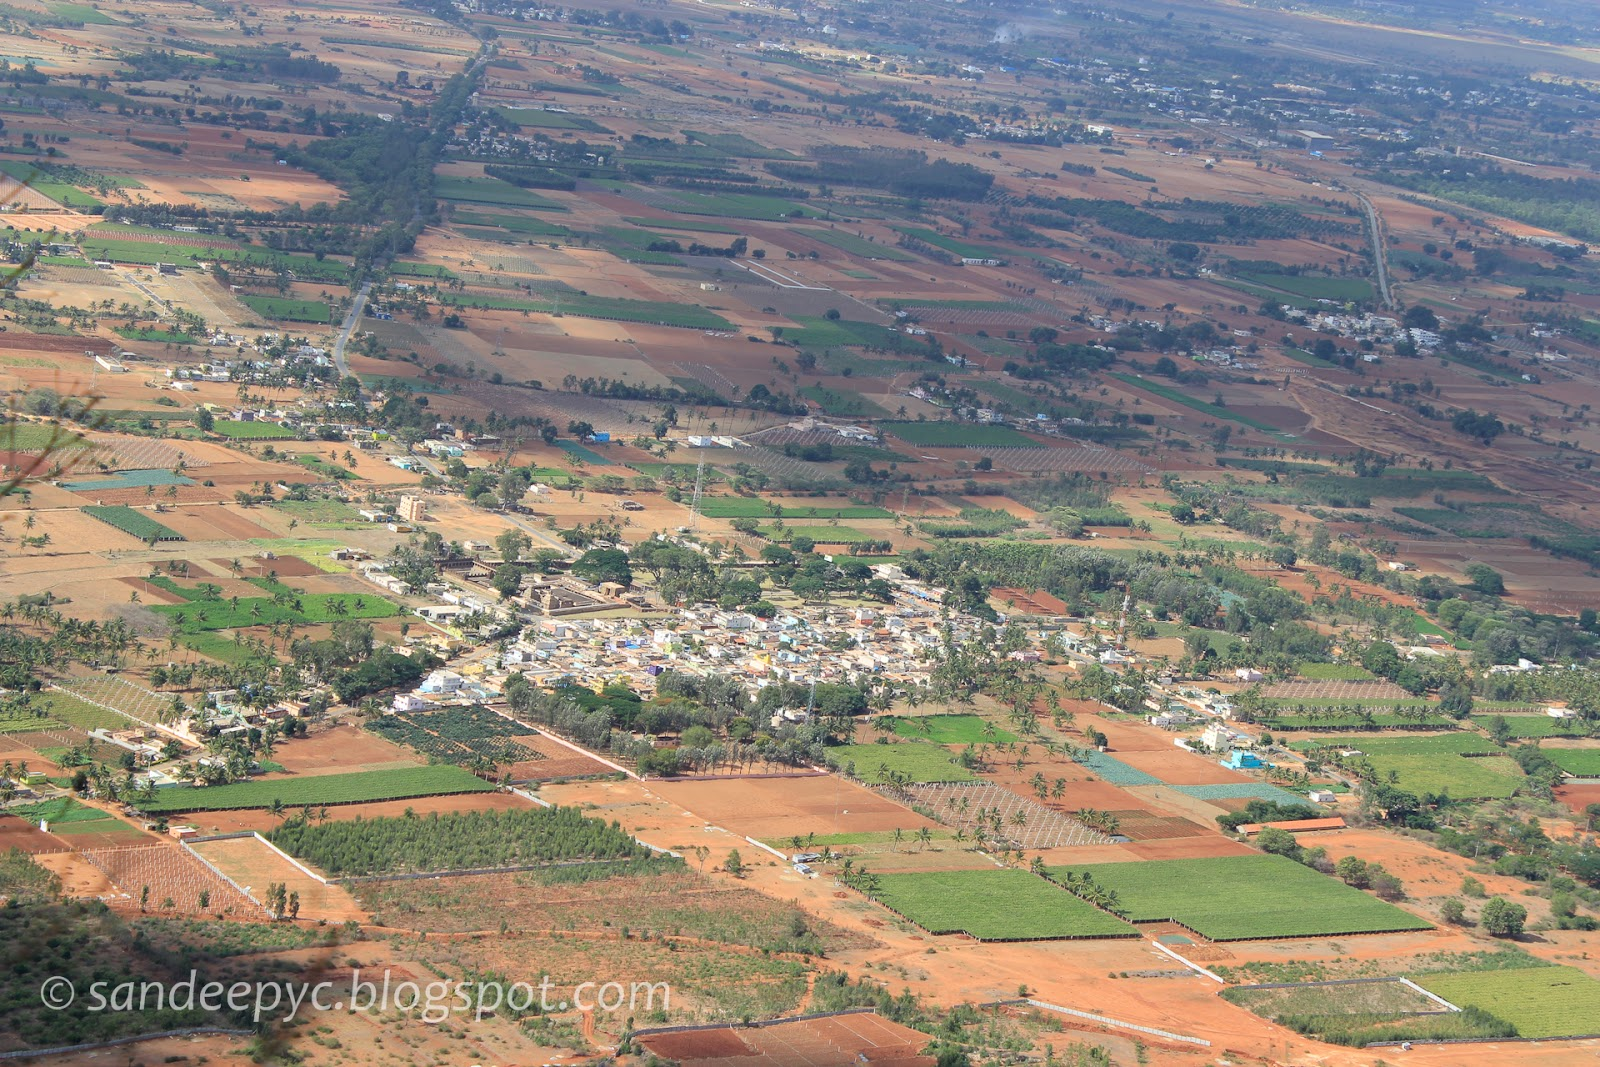 View of the town from the view point at Nandi hills